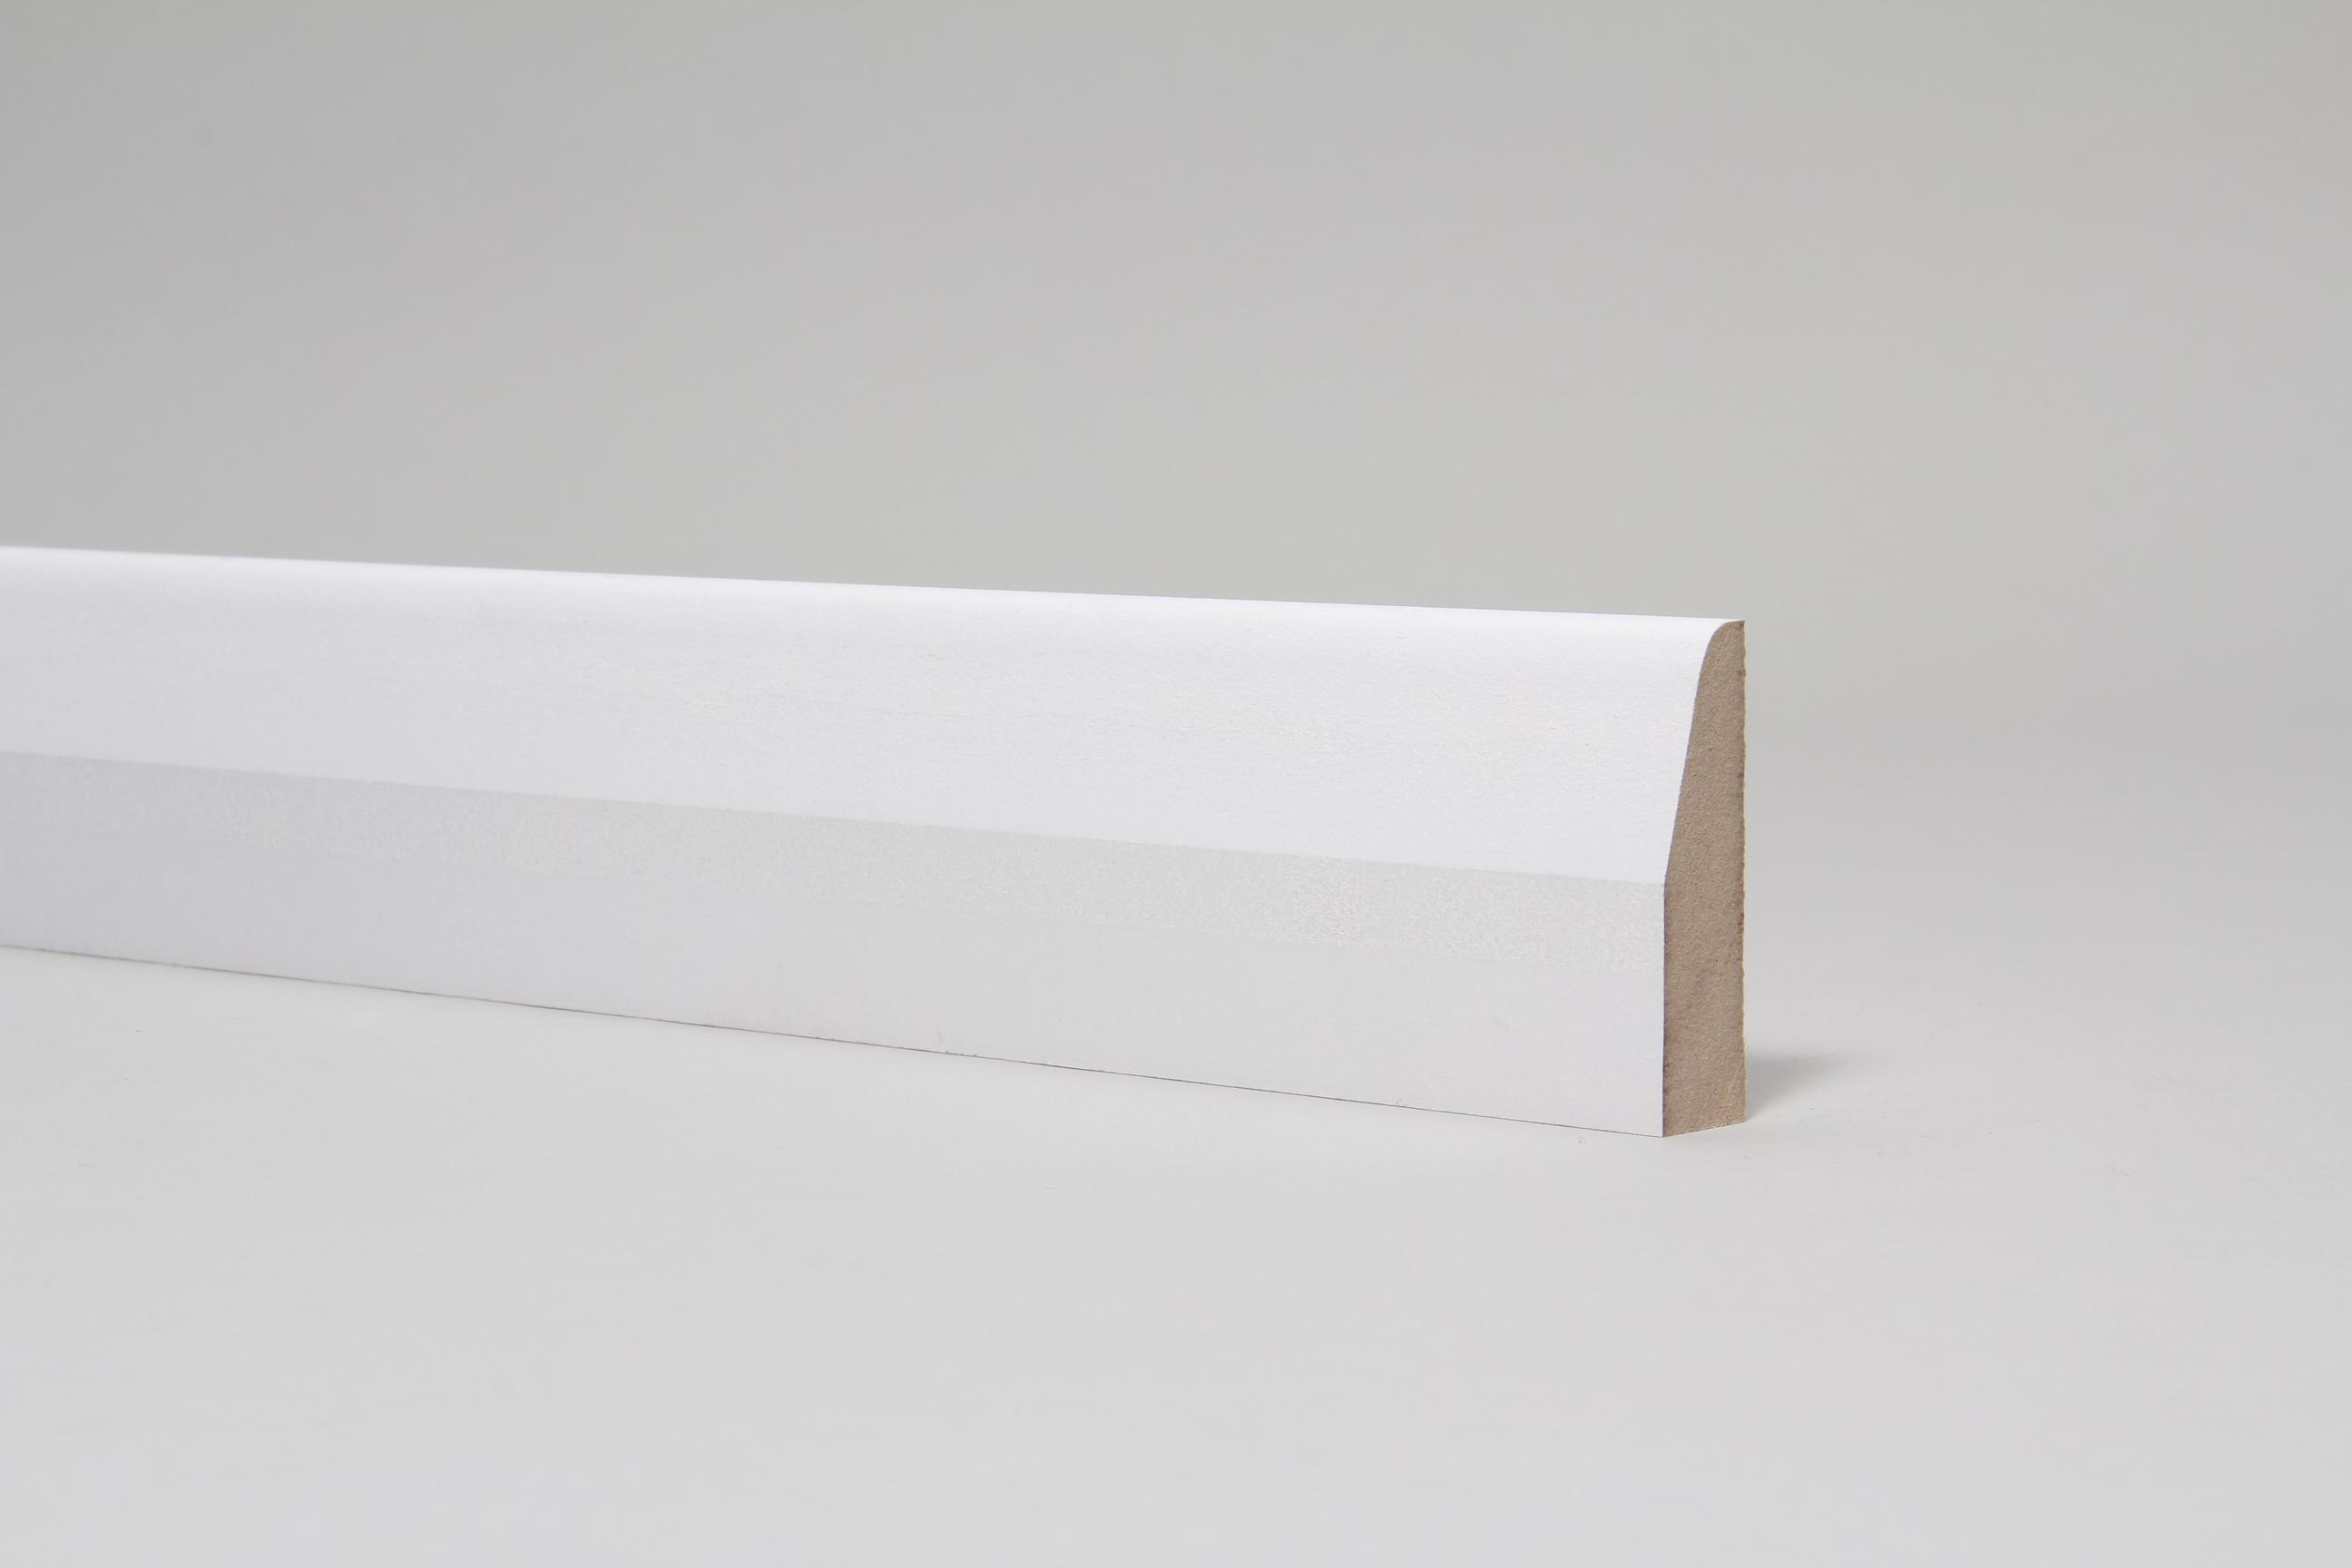 Chamfered & Rounded 18mm x 68mm x 2.2 Mtr Primed(Clearance)